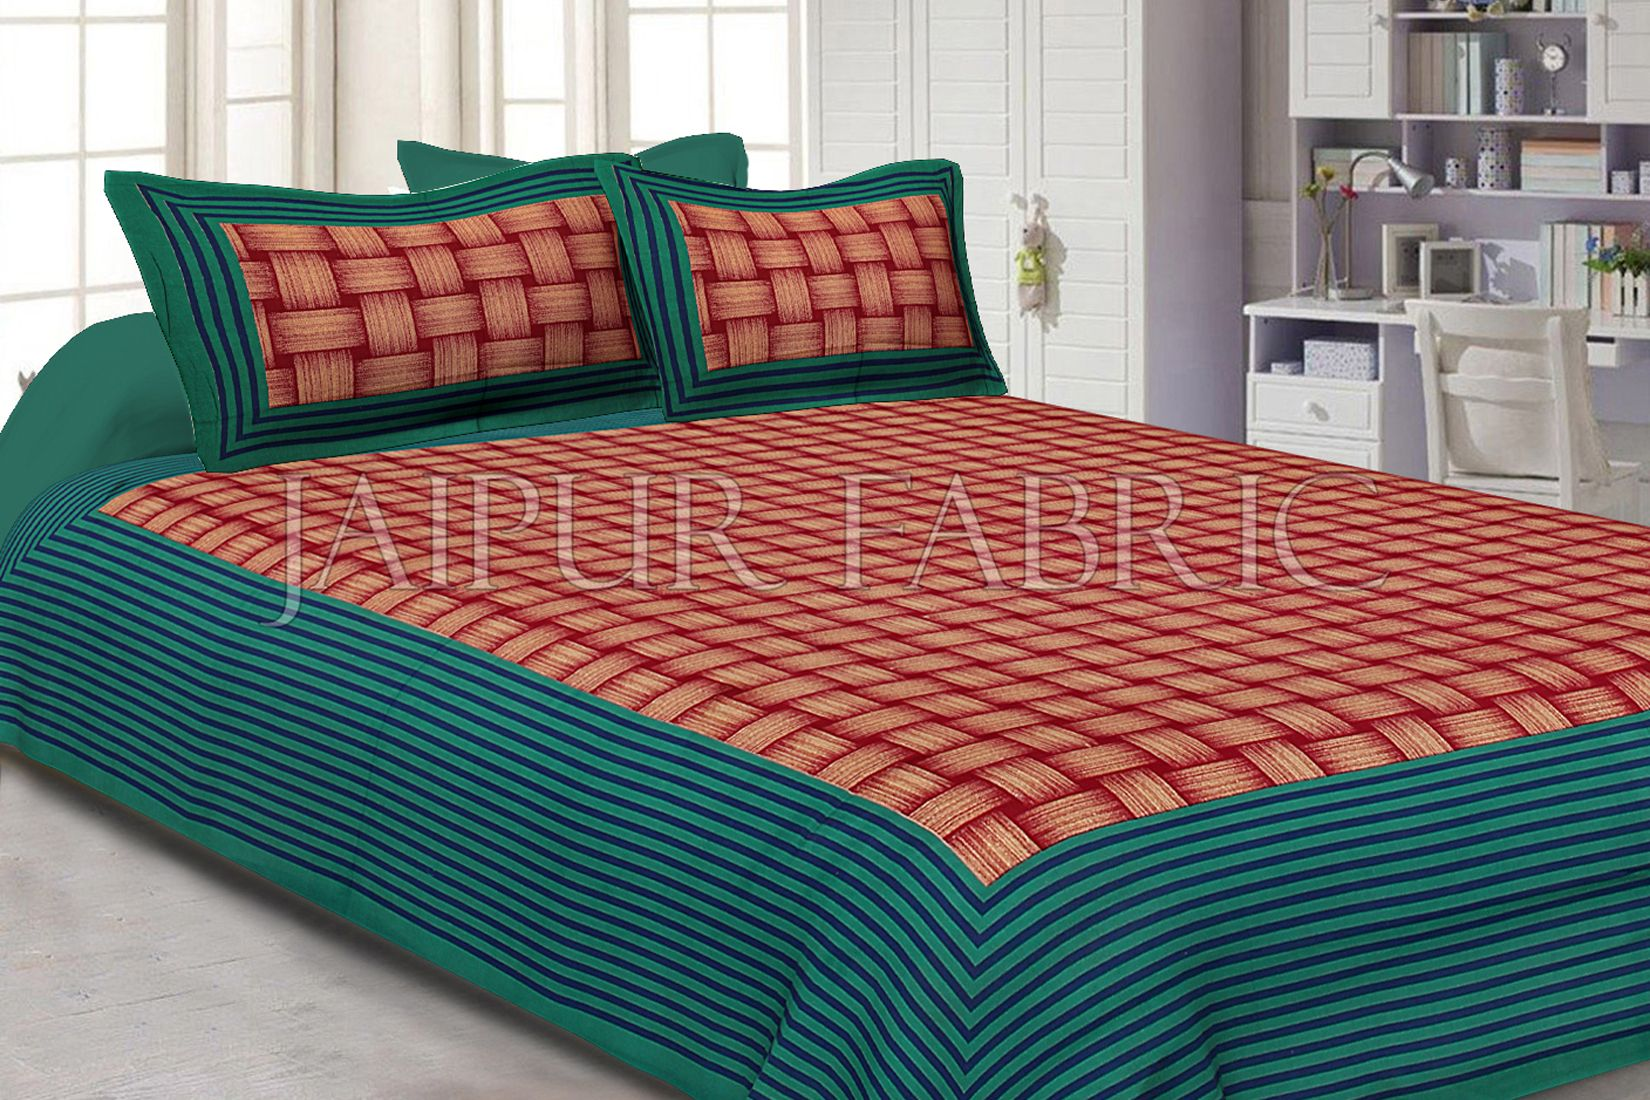 Green Border With Lining Check Pattern Cotton Double Bed Sheet